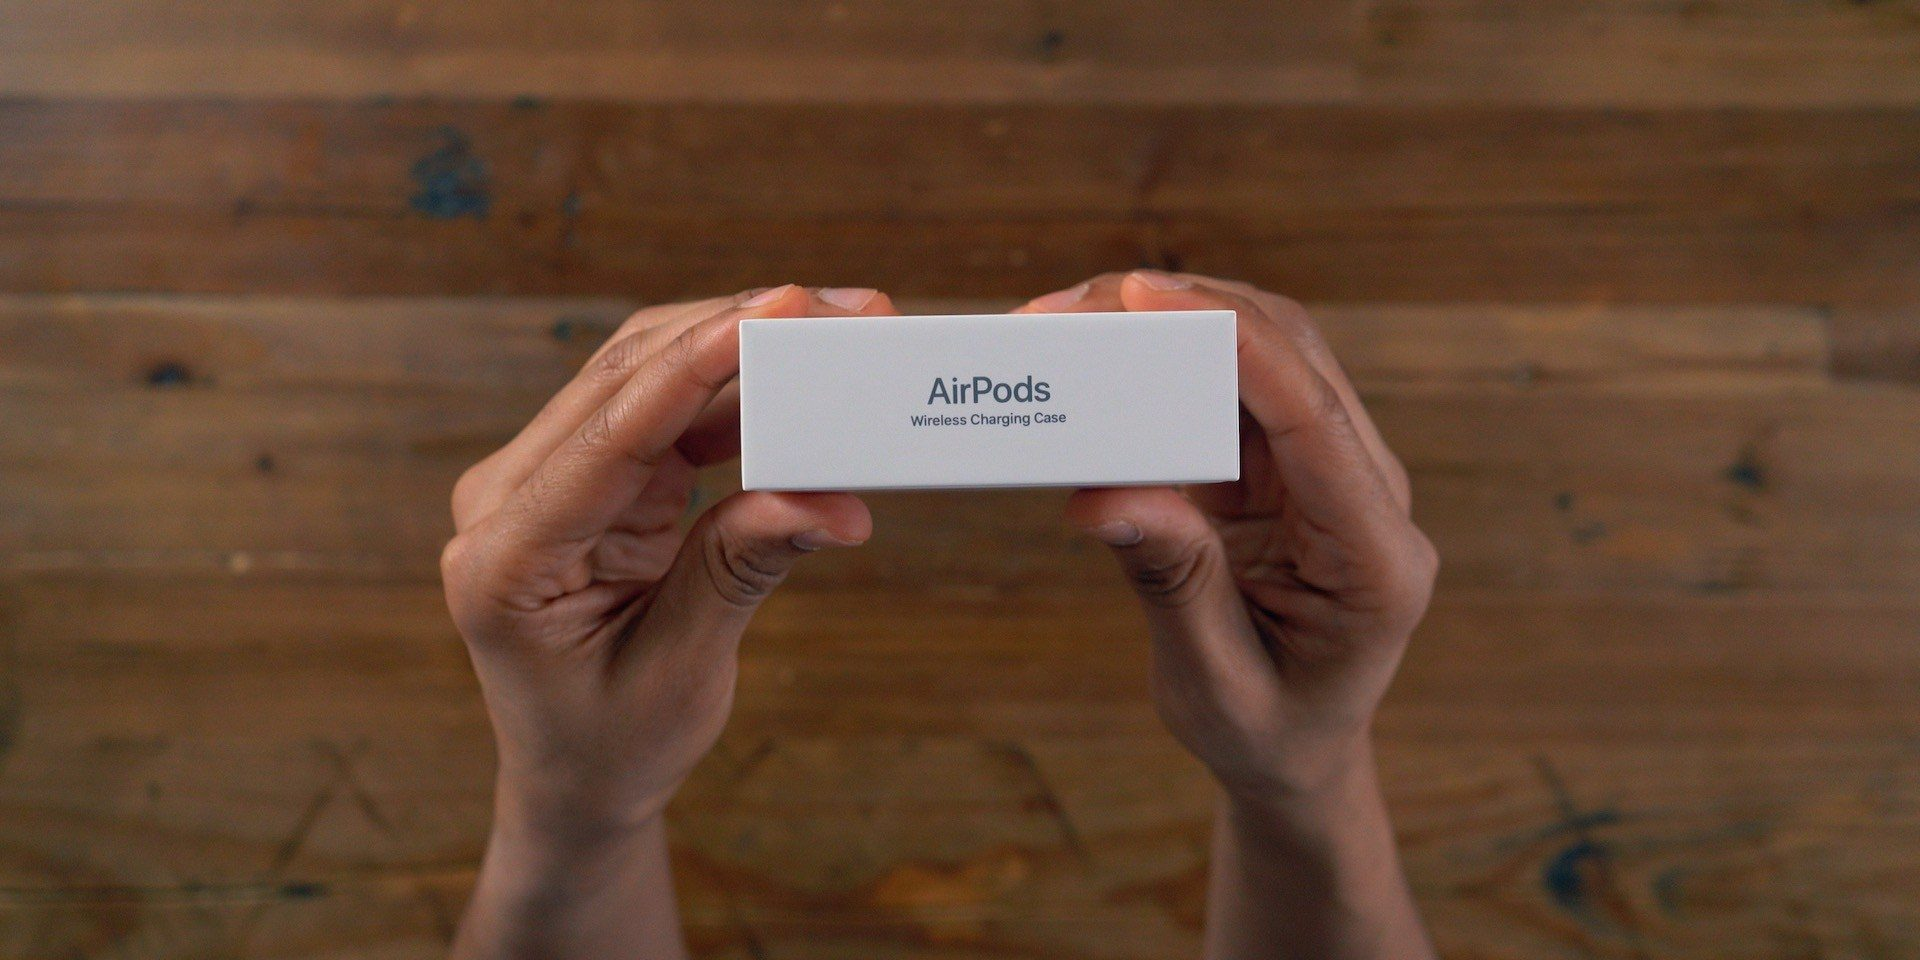 AirPods-Wireless-Charging-Case-Box